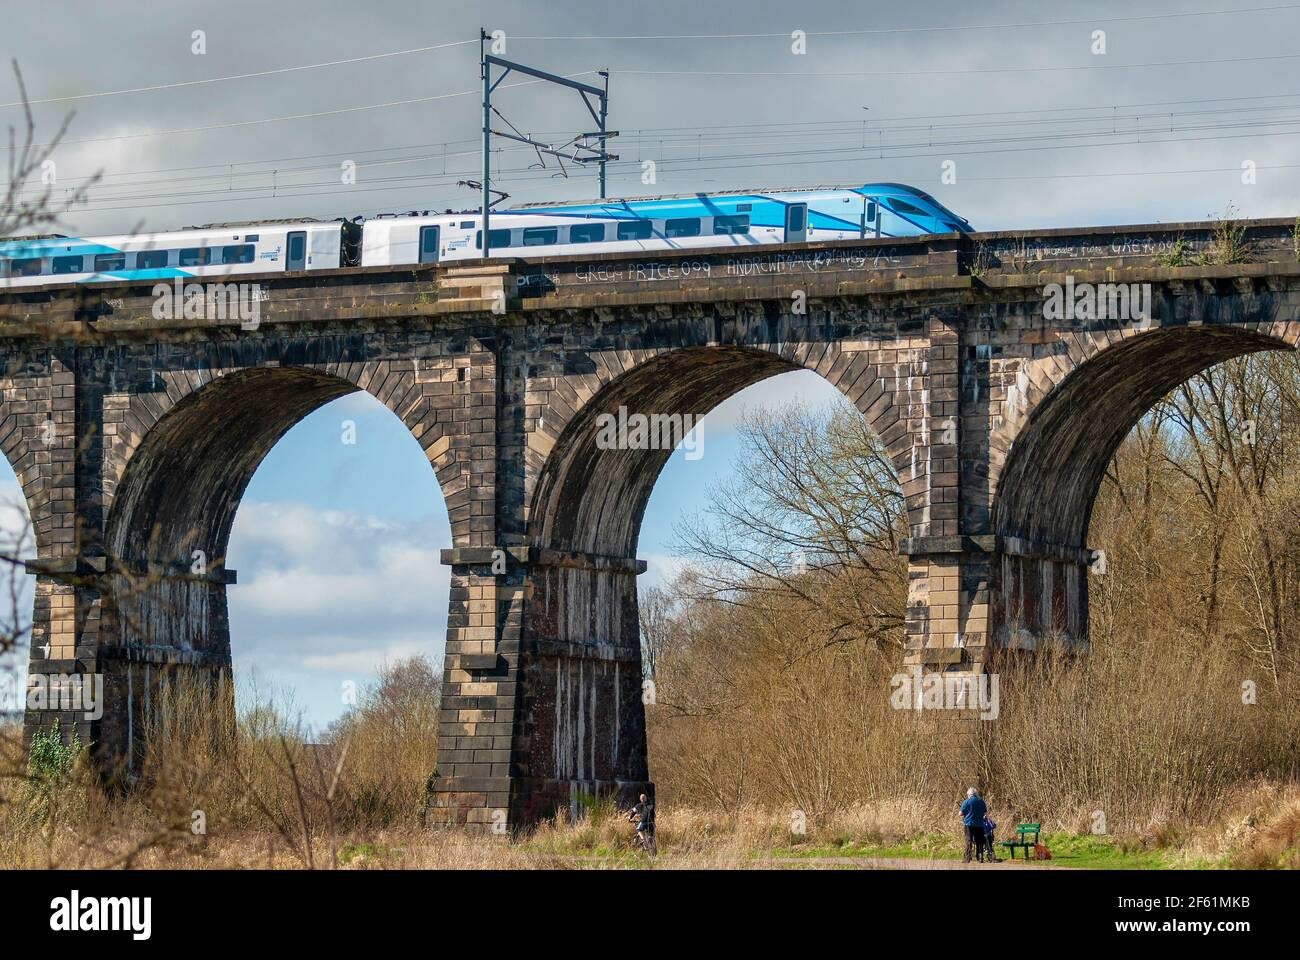 A TPE train crossing the Sankey viaduct at Earlestown over the Sankey Valley. Stock Photo